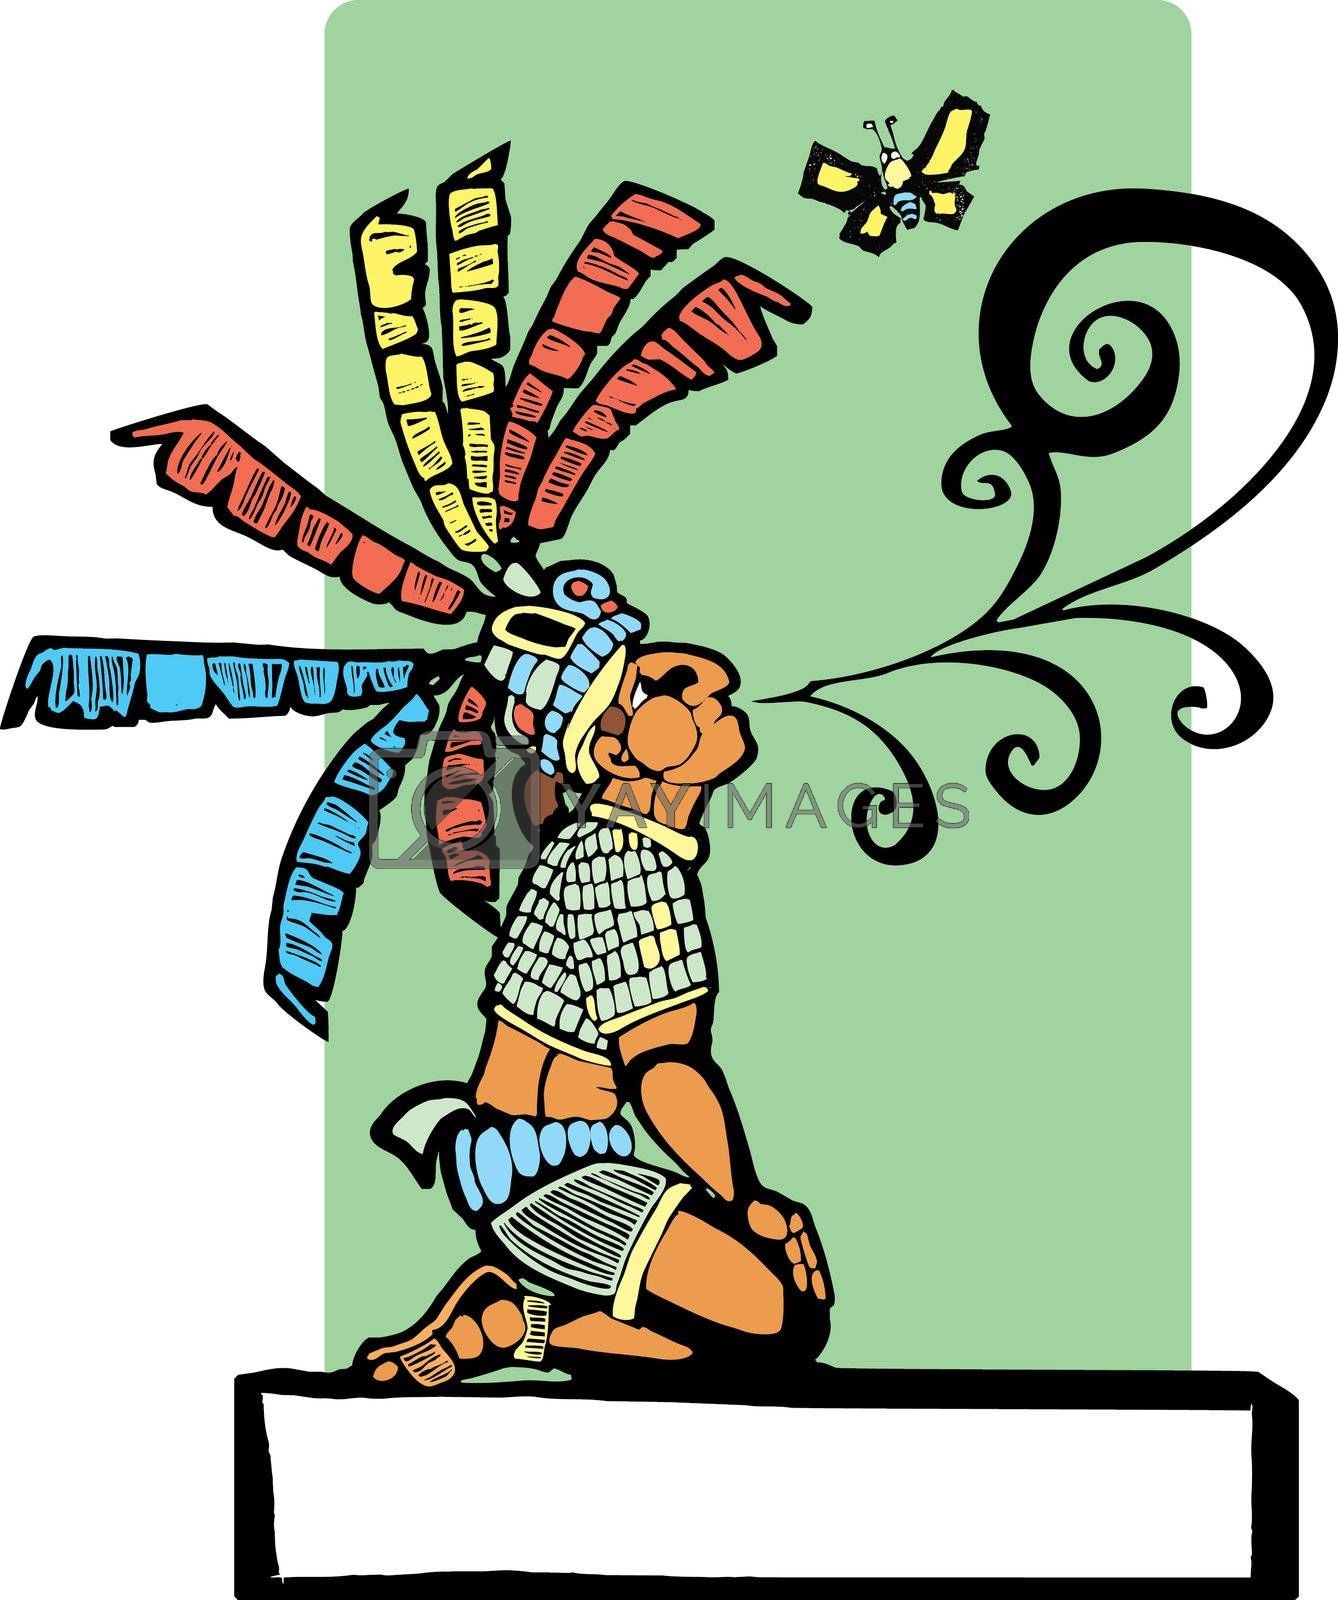 Mayan storyteller with speech scroll coming from his mouth and butterfly.